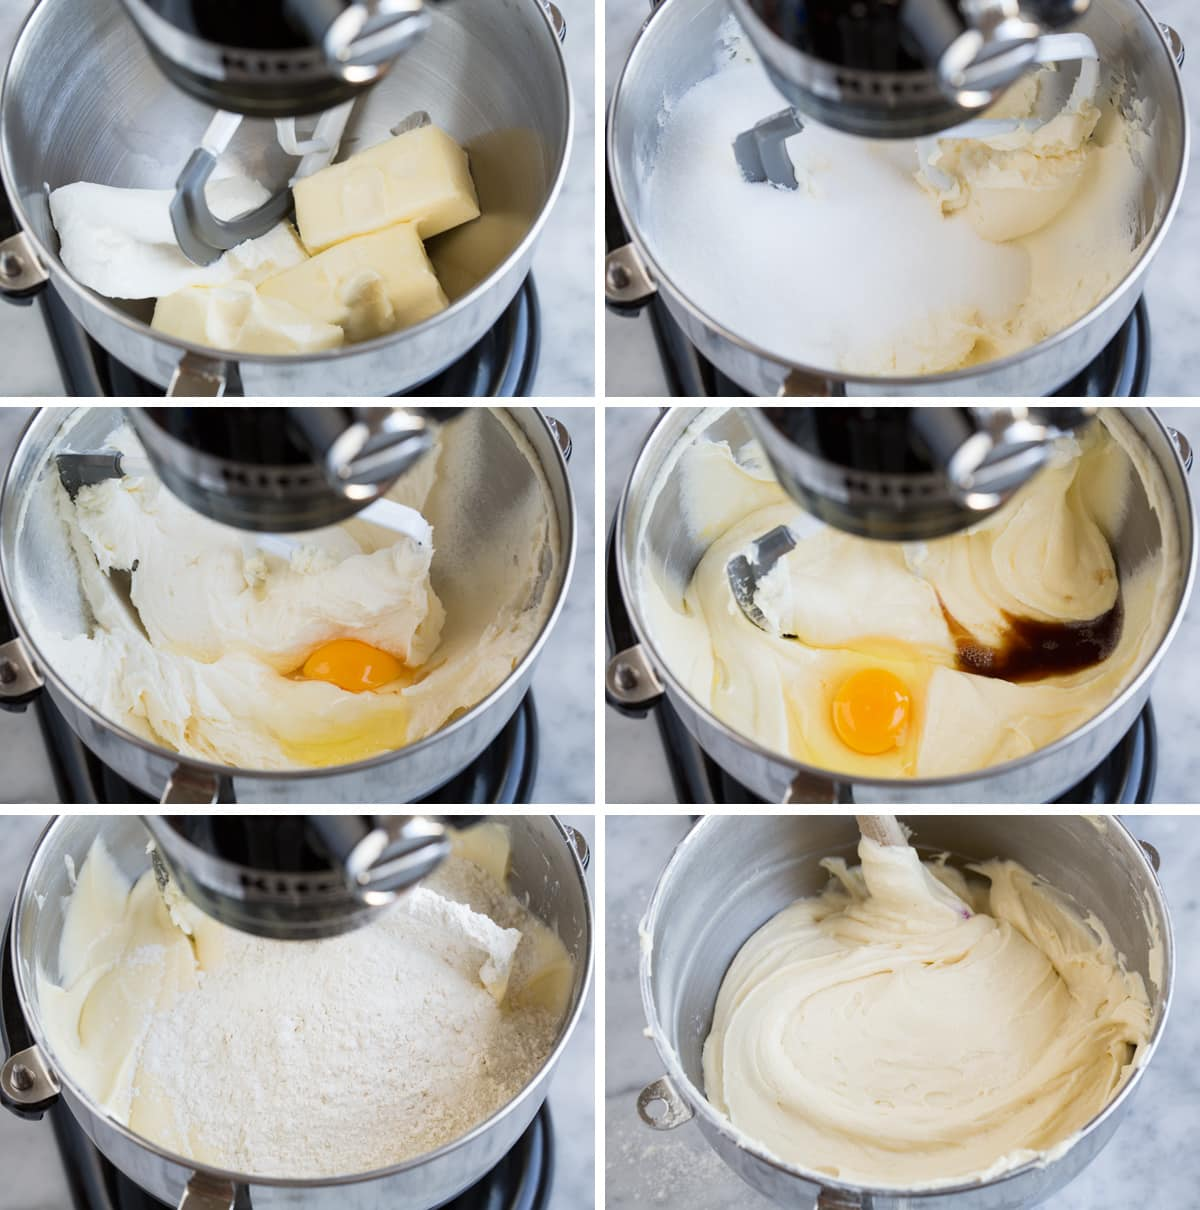 Showing steps of making pound cake batter in an electric stand mixer bowl.